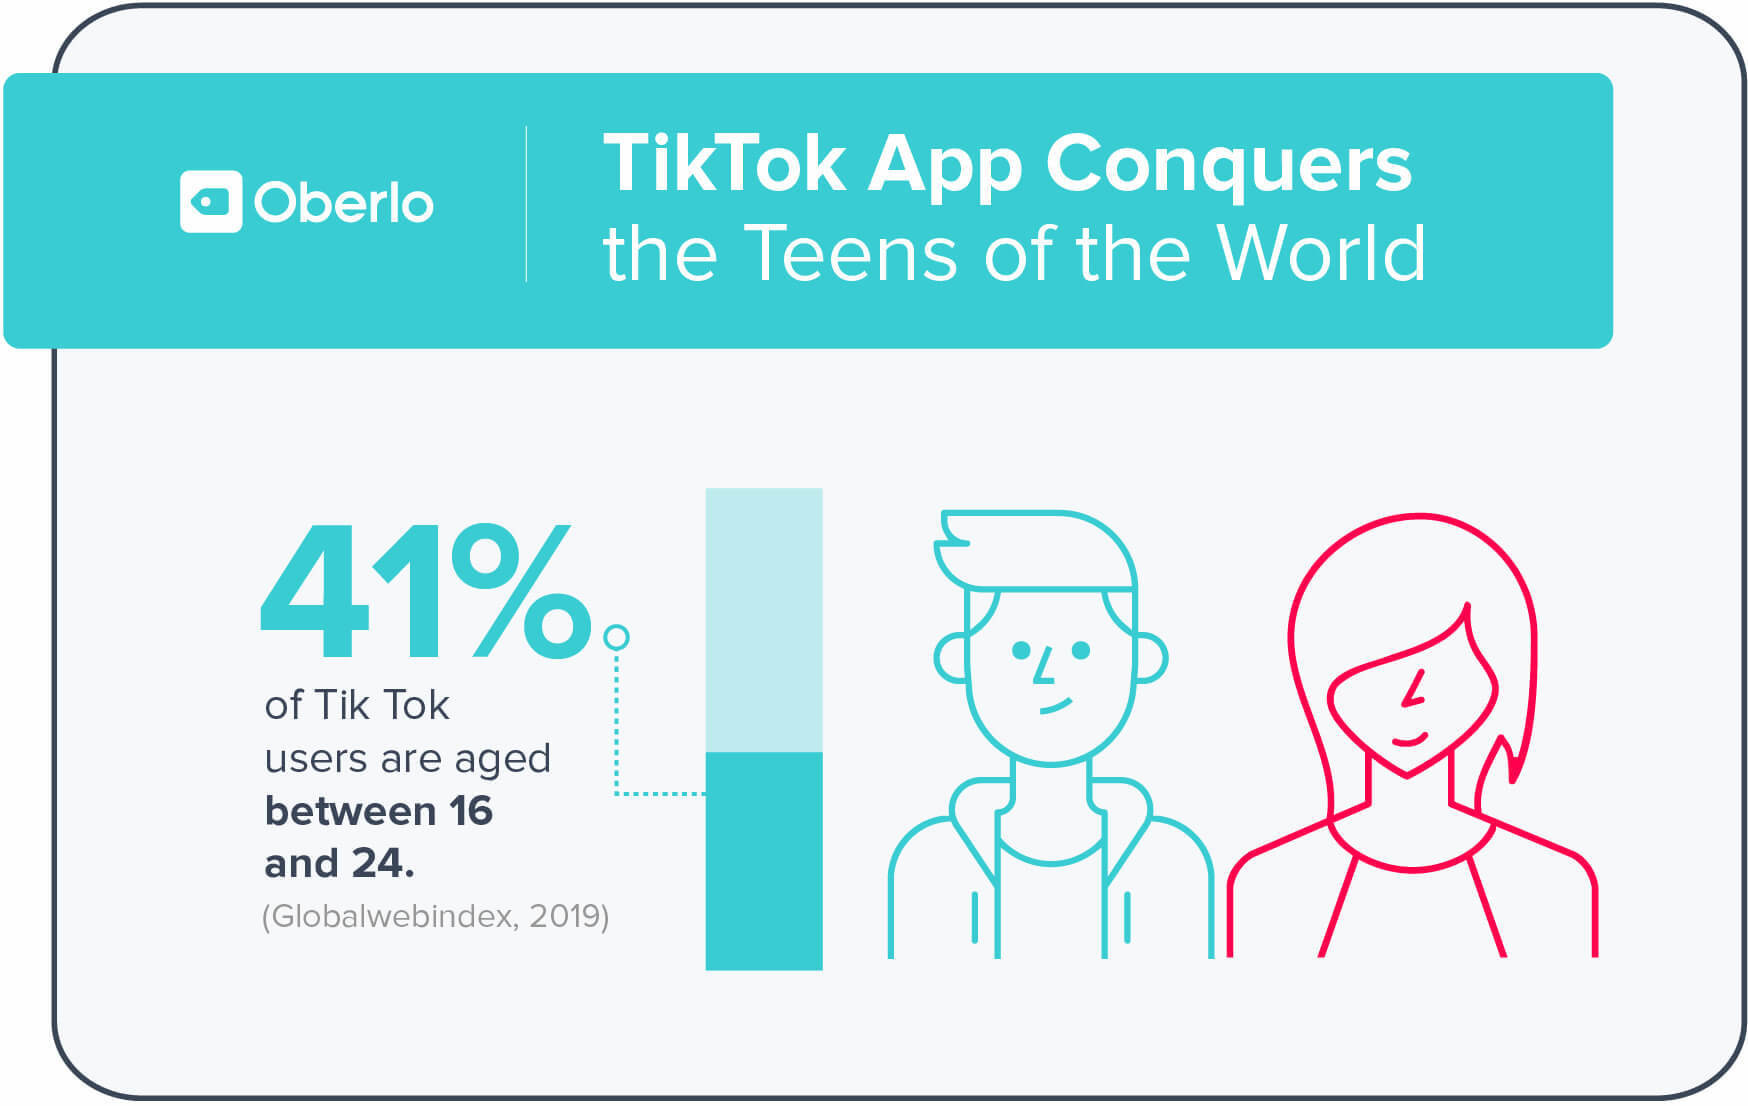 Tik Tok app conquers teens of the world